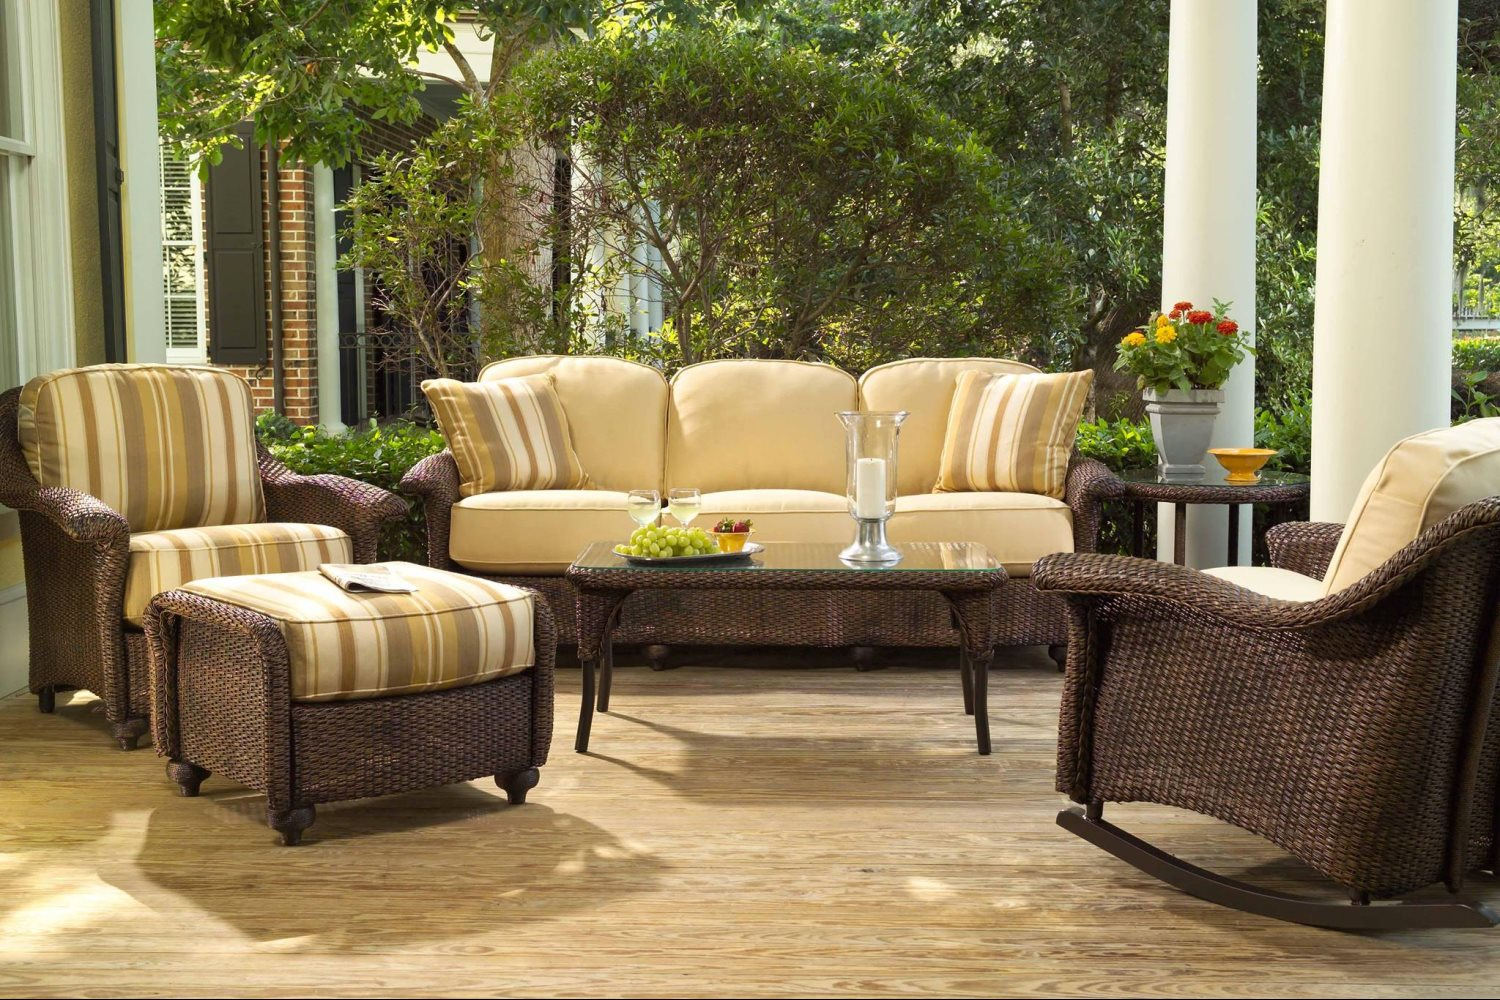 Patio furniture outdoor seating dining patio for Outdoor furniture